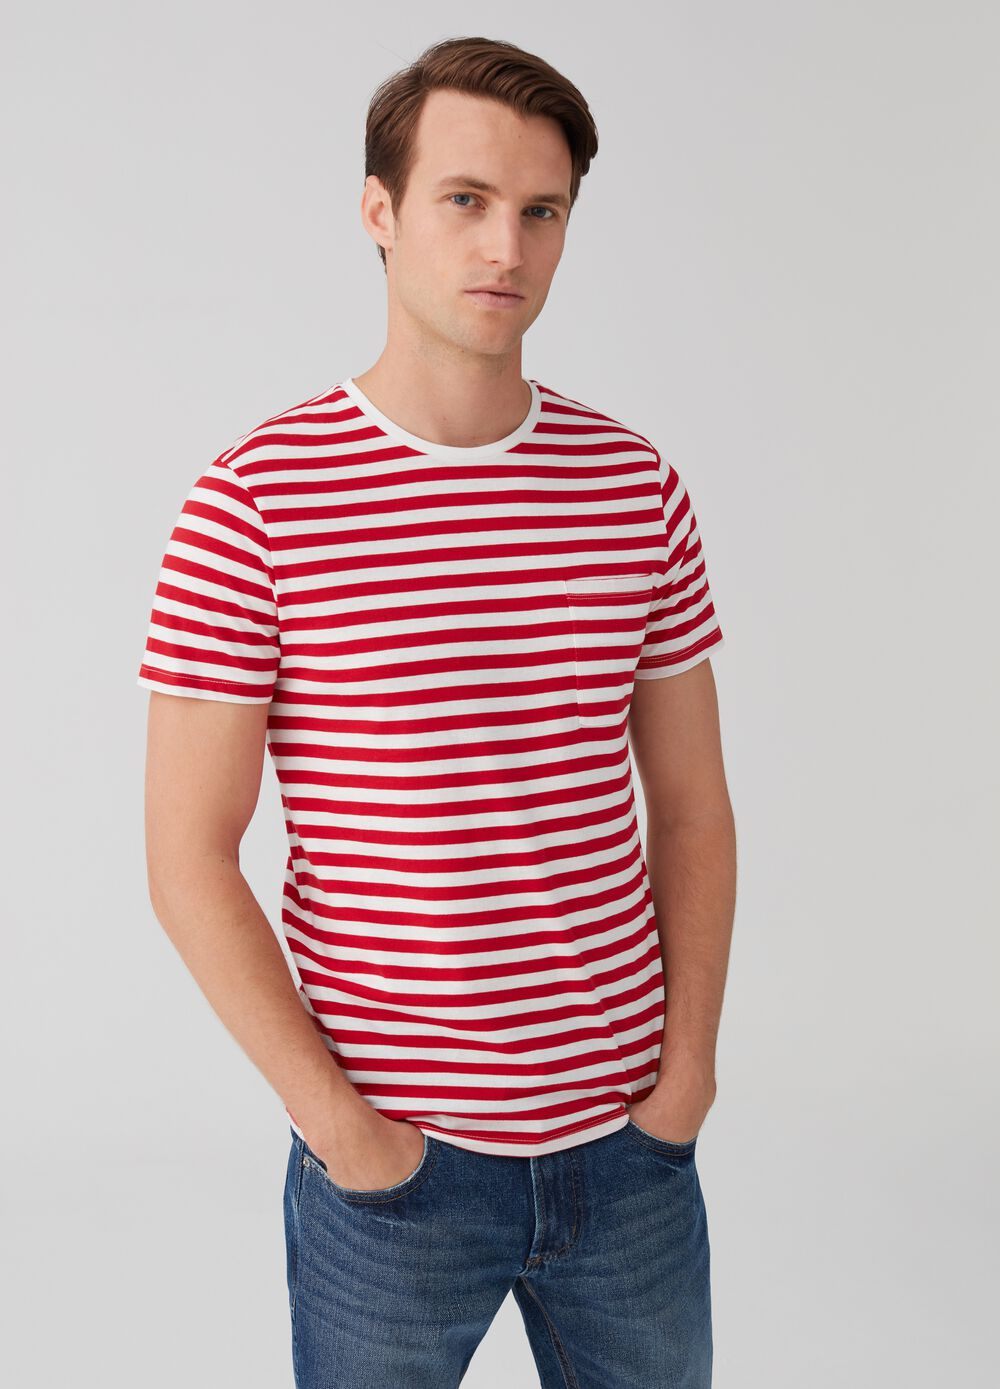 T-shirt with round neck and striped pattern